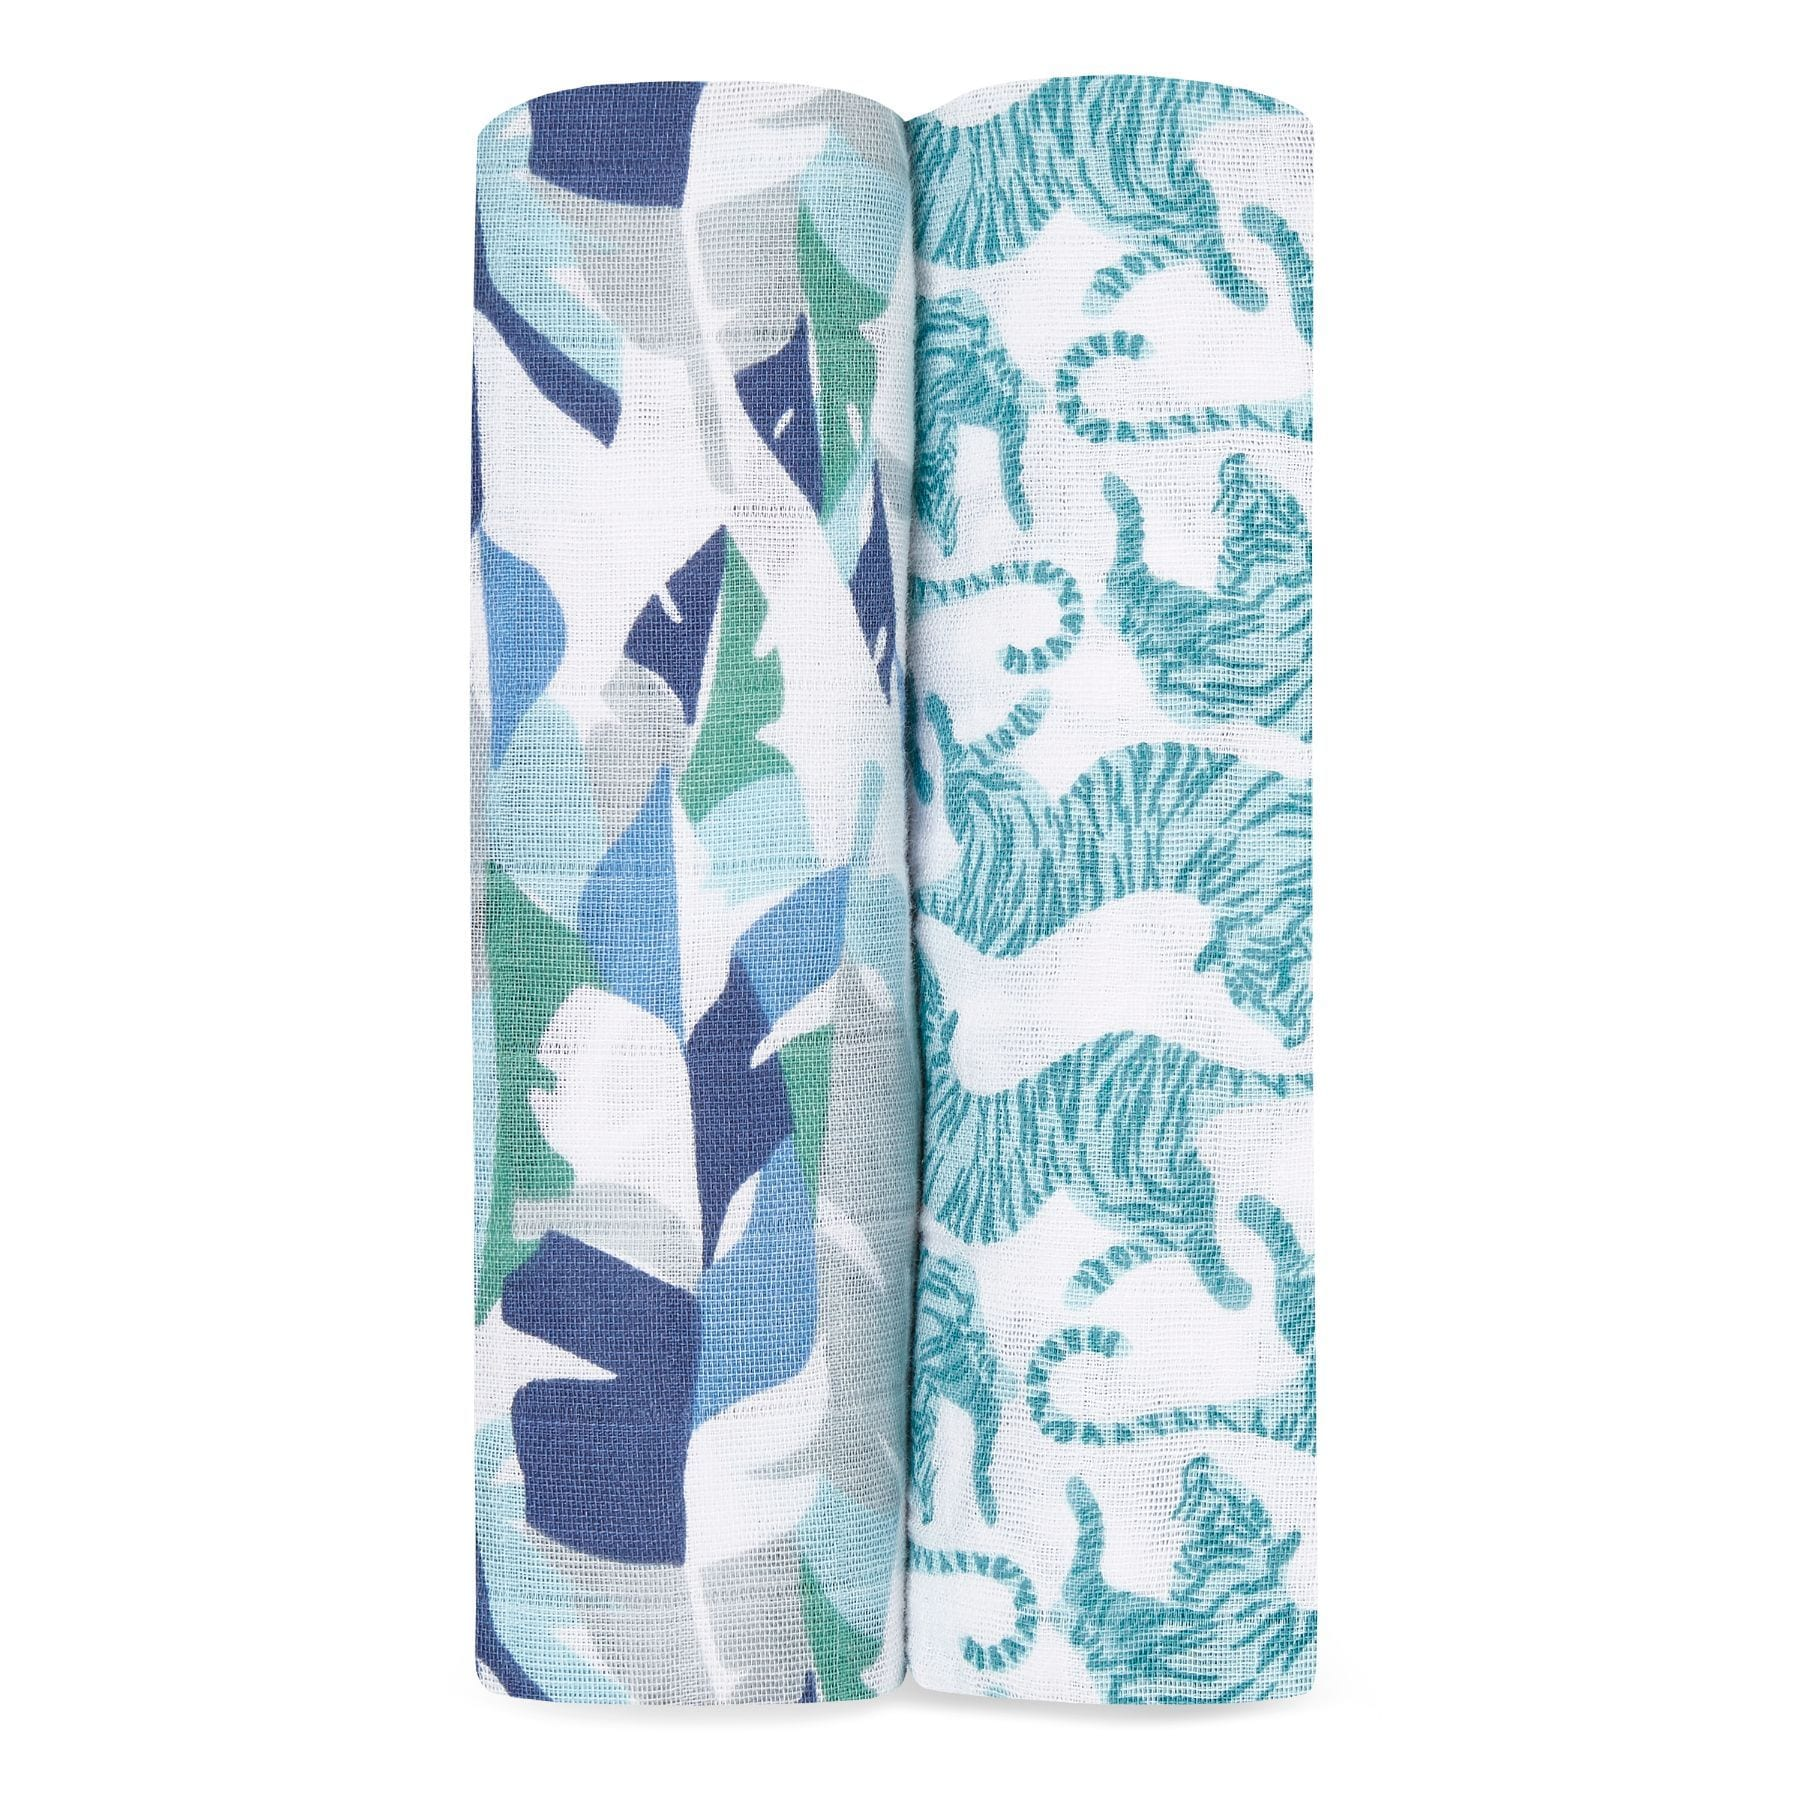 Aden & Anais 2 Pack Swaddle Wraps - Dancing Tigers